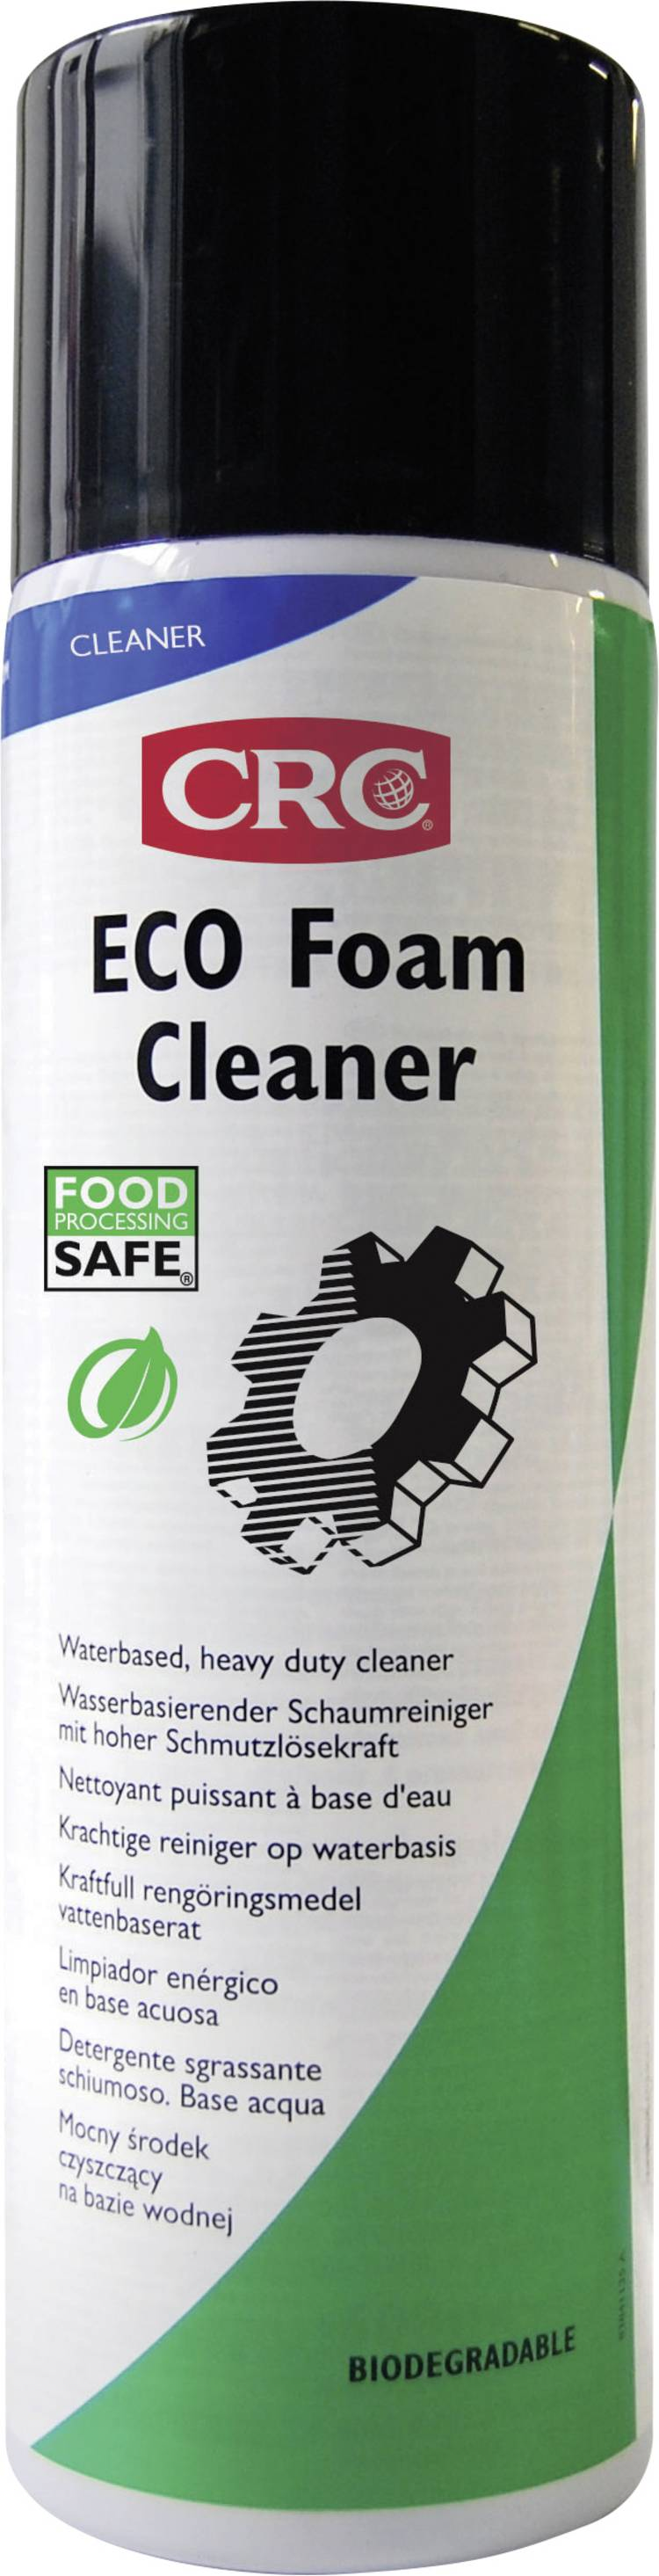 500 ml CRC Foam Cleaner 10278-AB